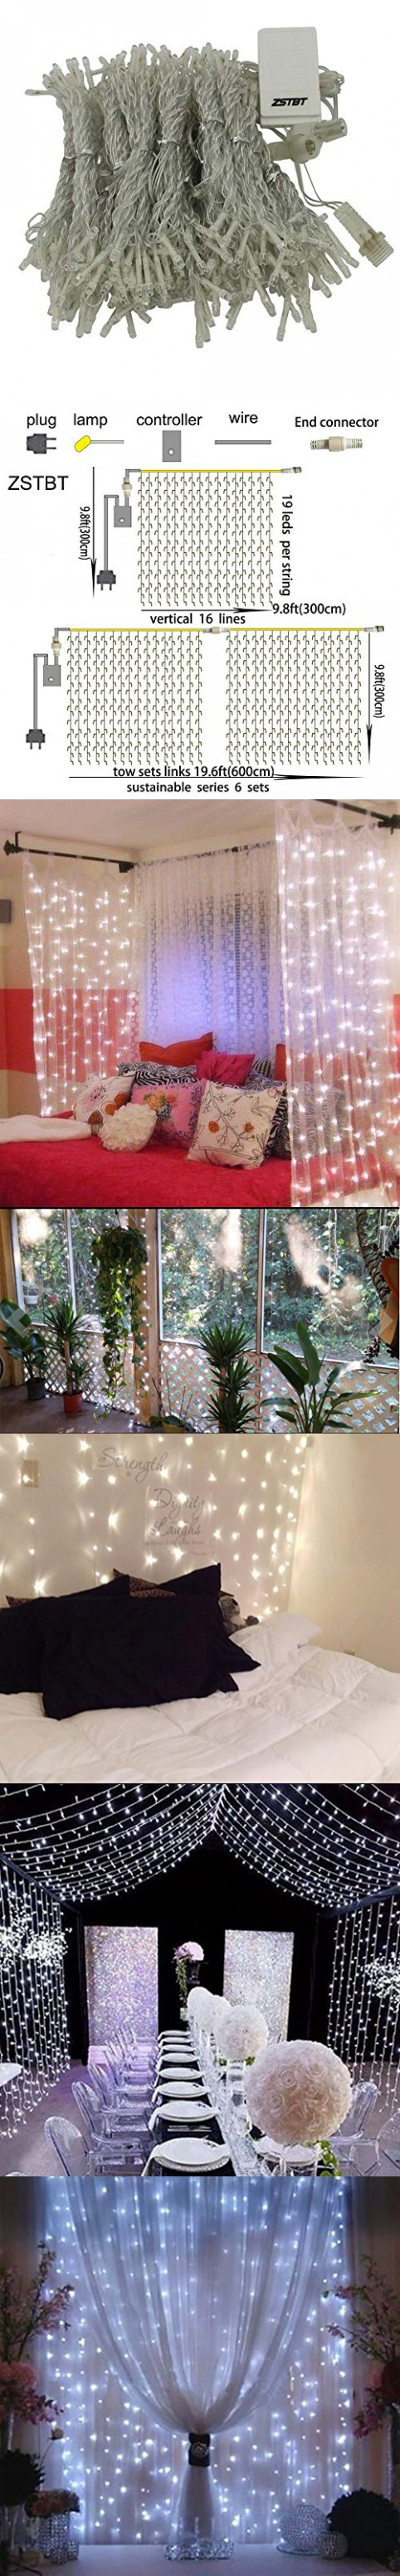 ZSTBT 300LED Linkable Window Curtain Icicle Fairy String Lights For Christmas Wedding Patio Lawn and Garden Decoration (White)